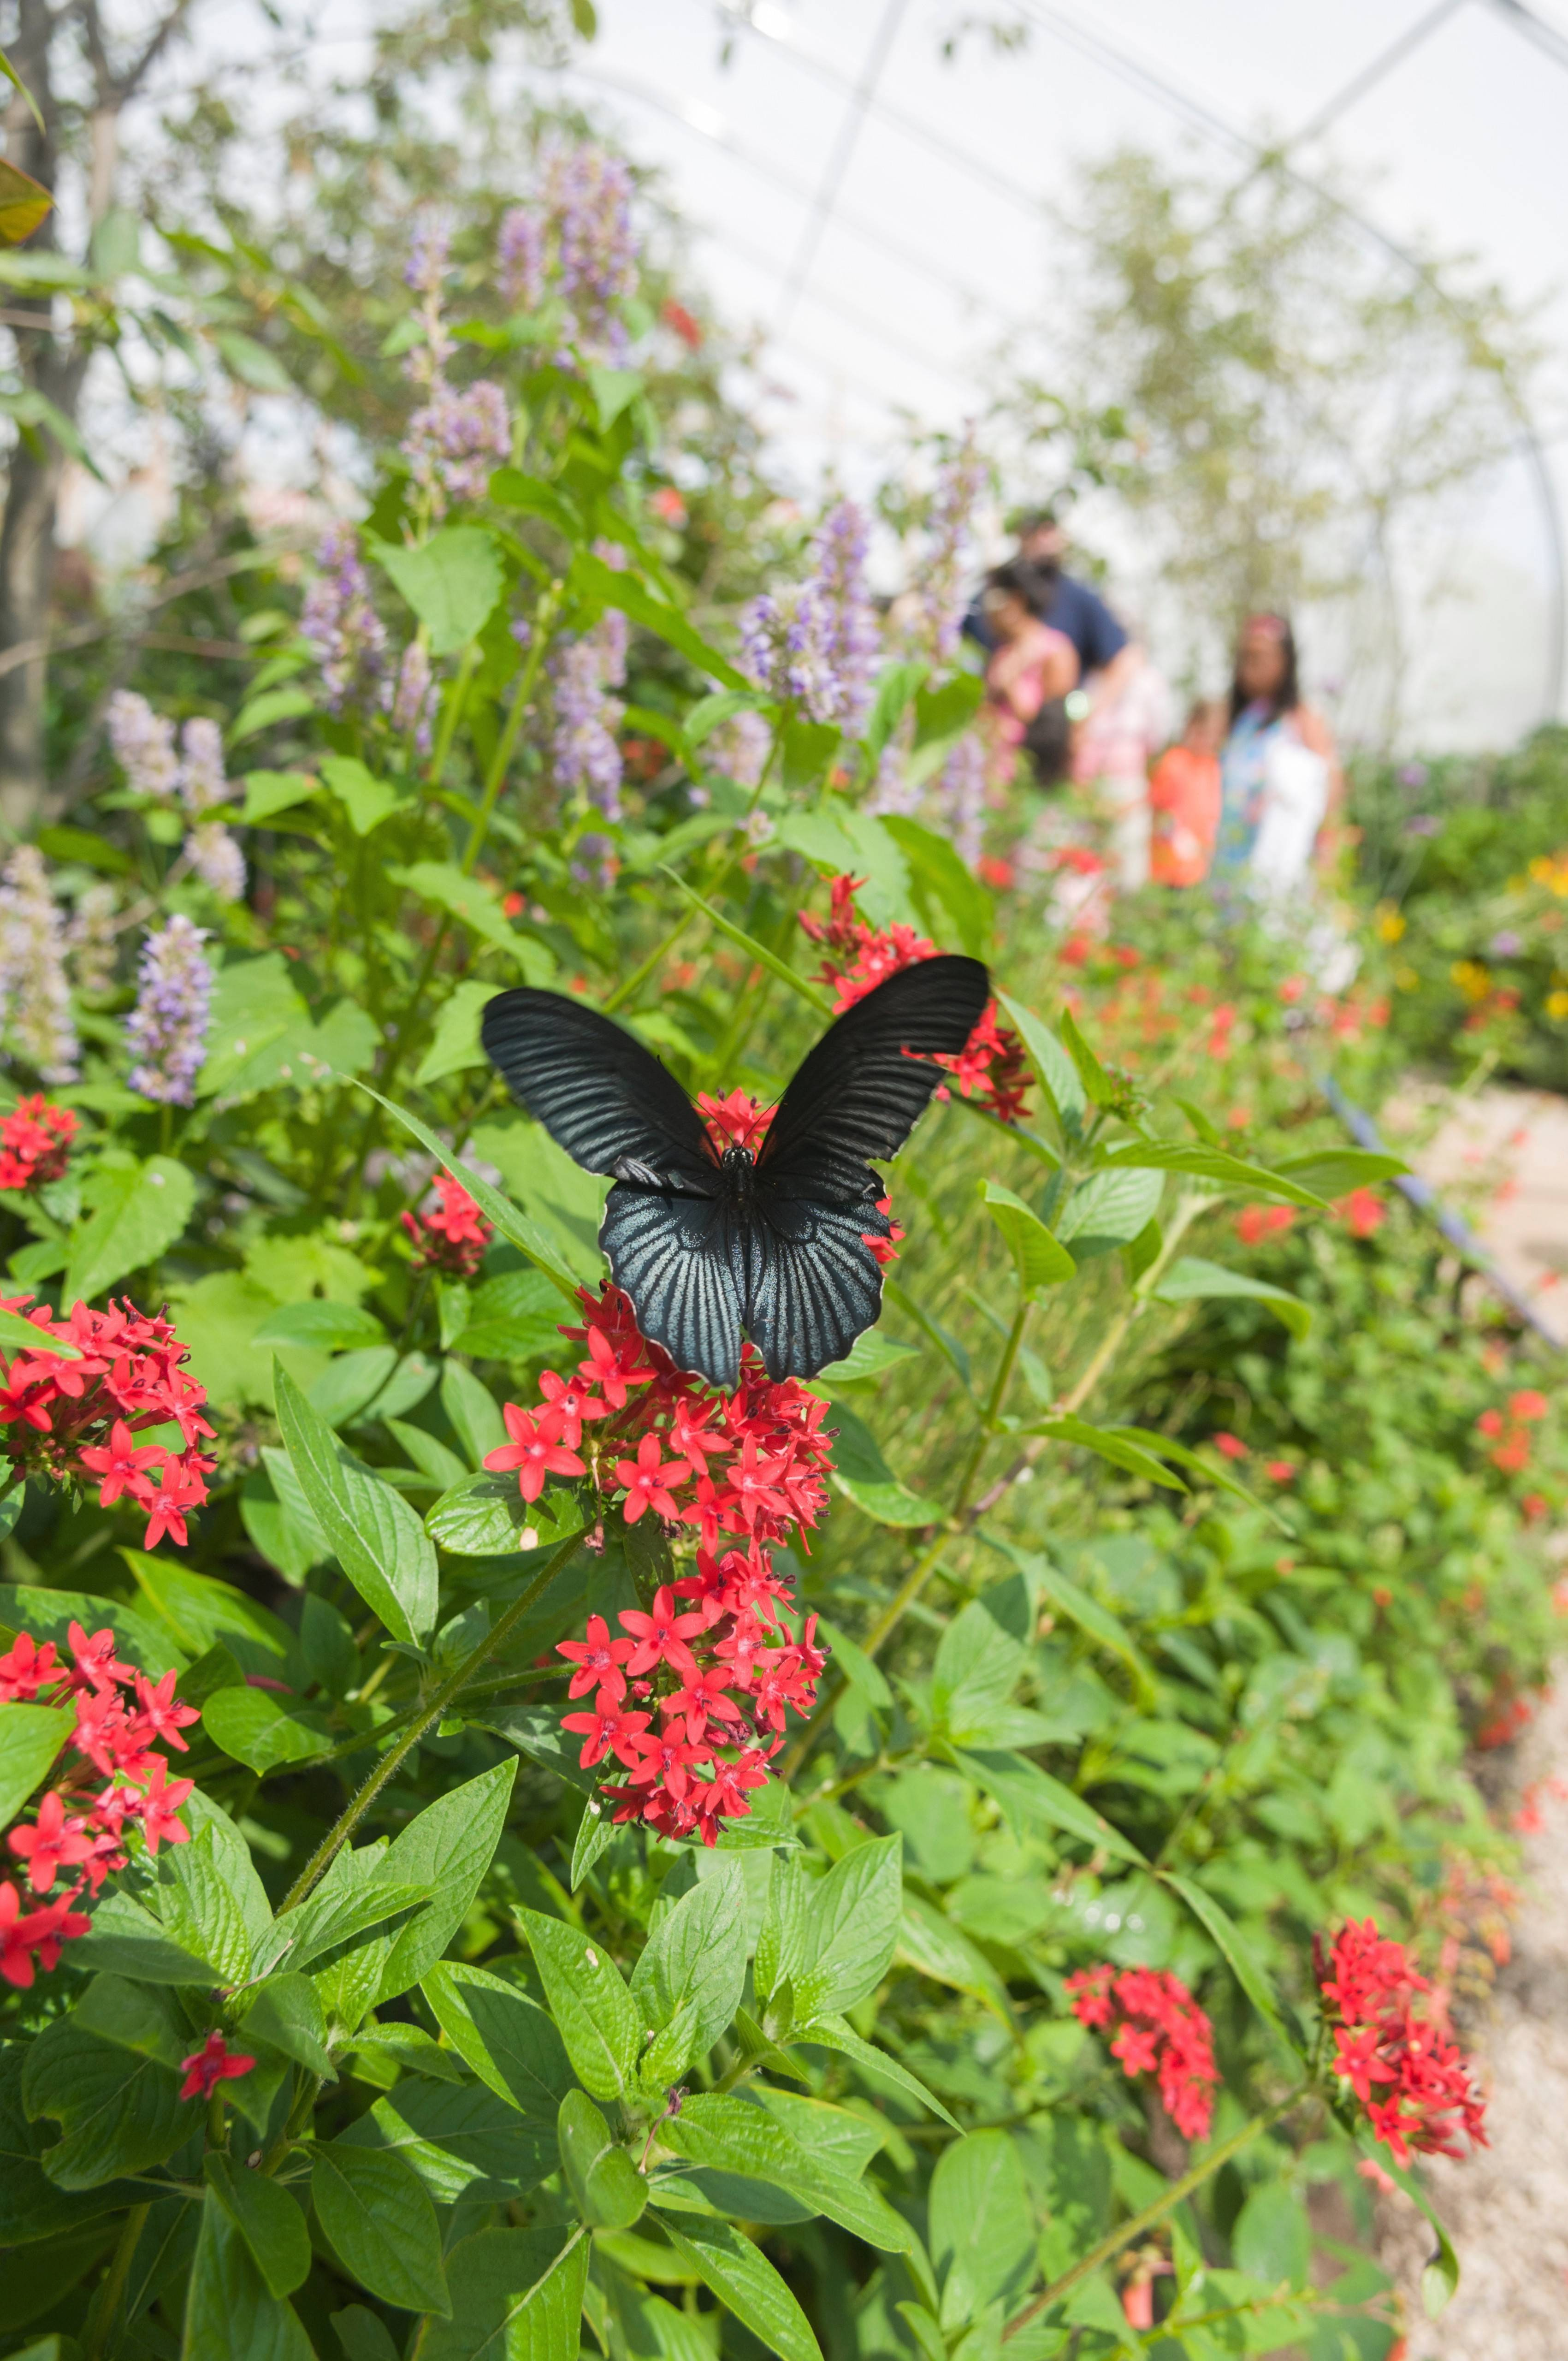 The seasonal exhibit Butterflies and Blooms at the Chicago Botanic Garden in Glencoe concludes on Monday, Sept. 1.